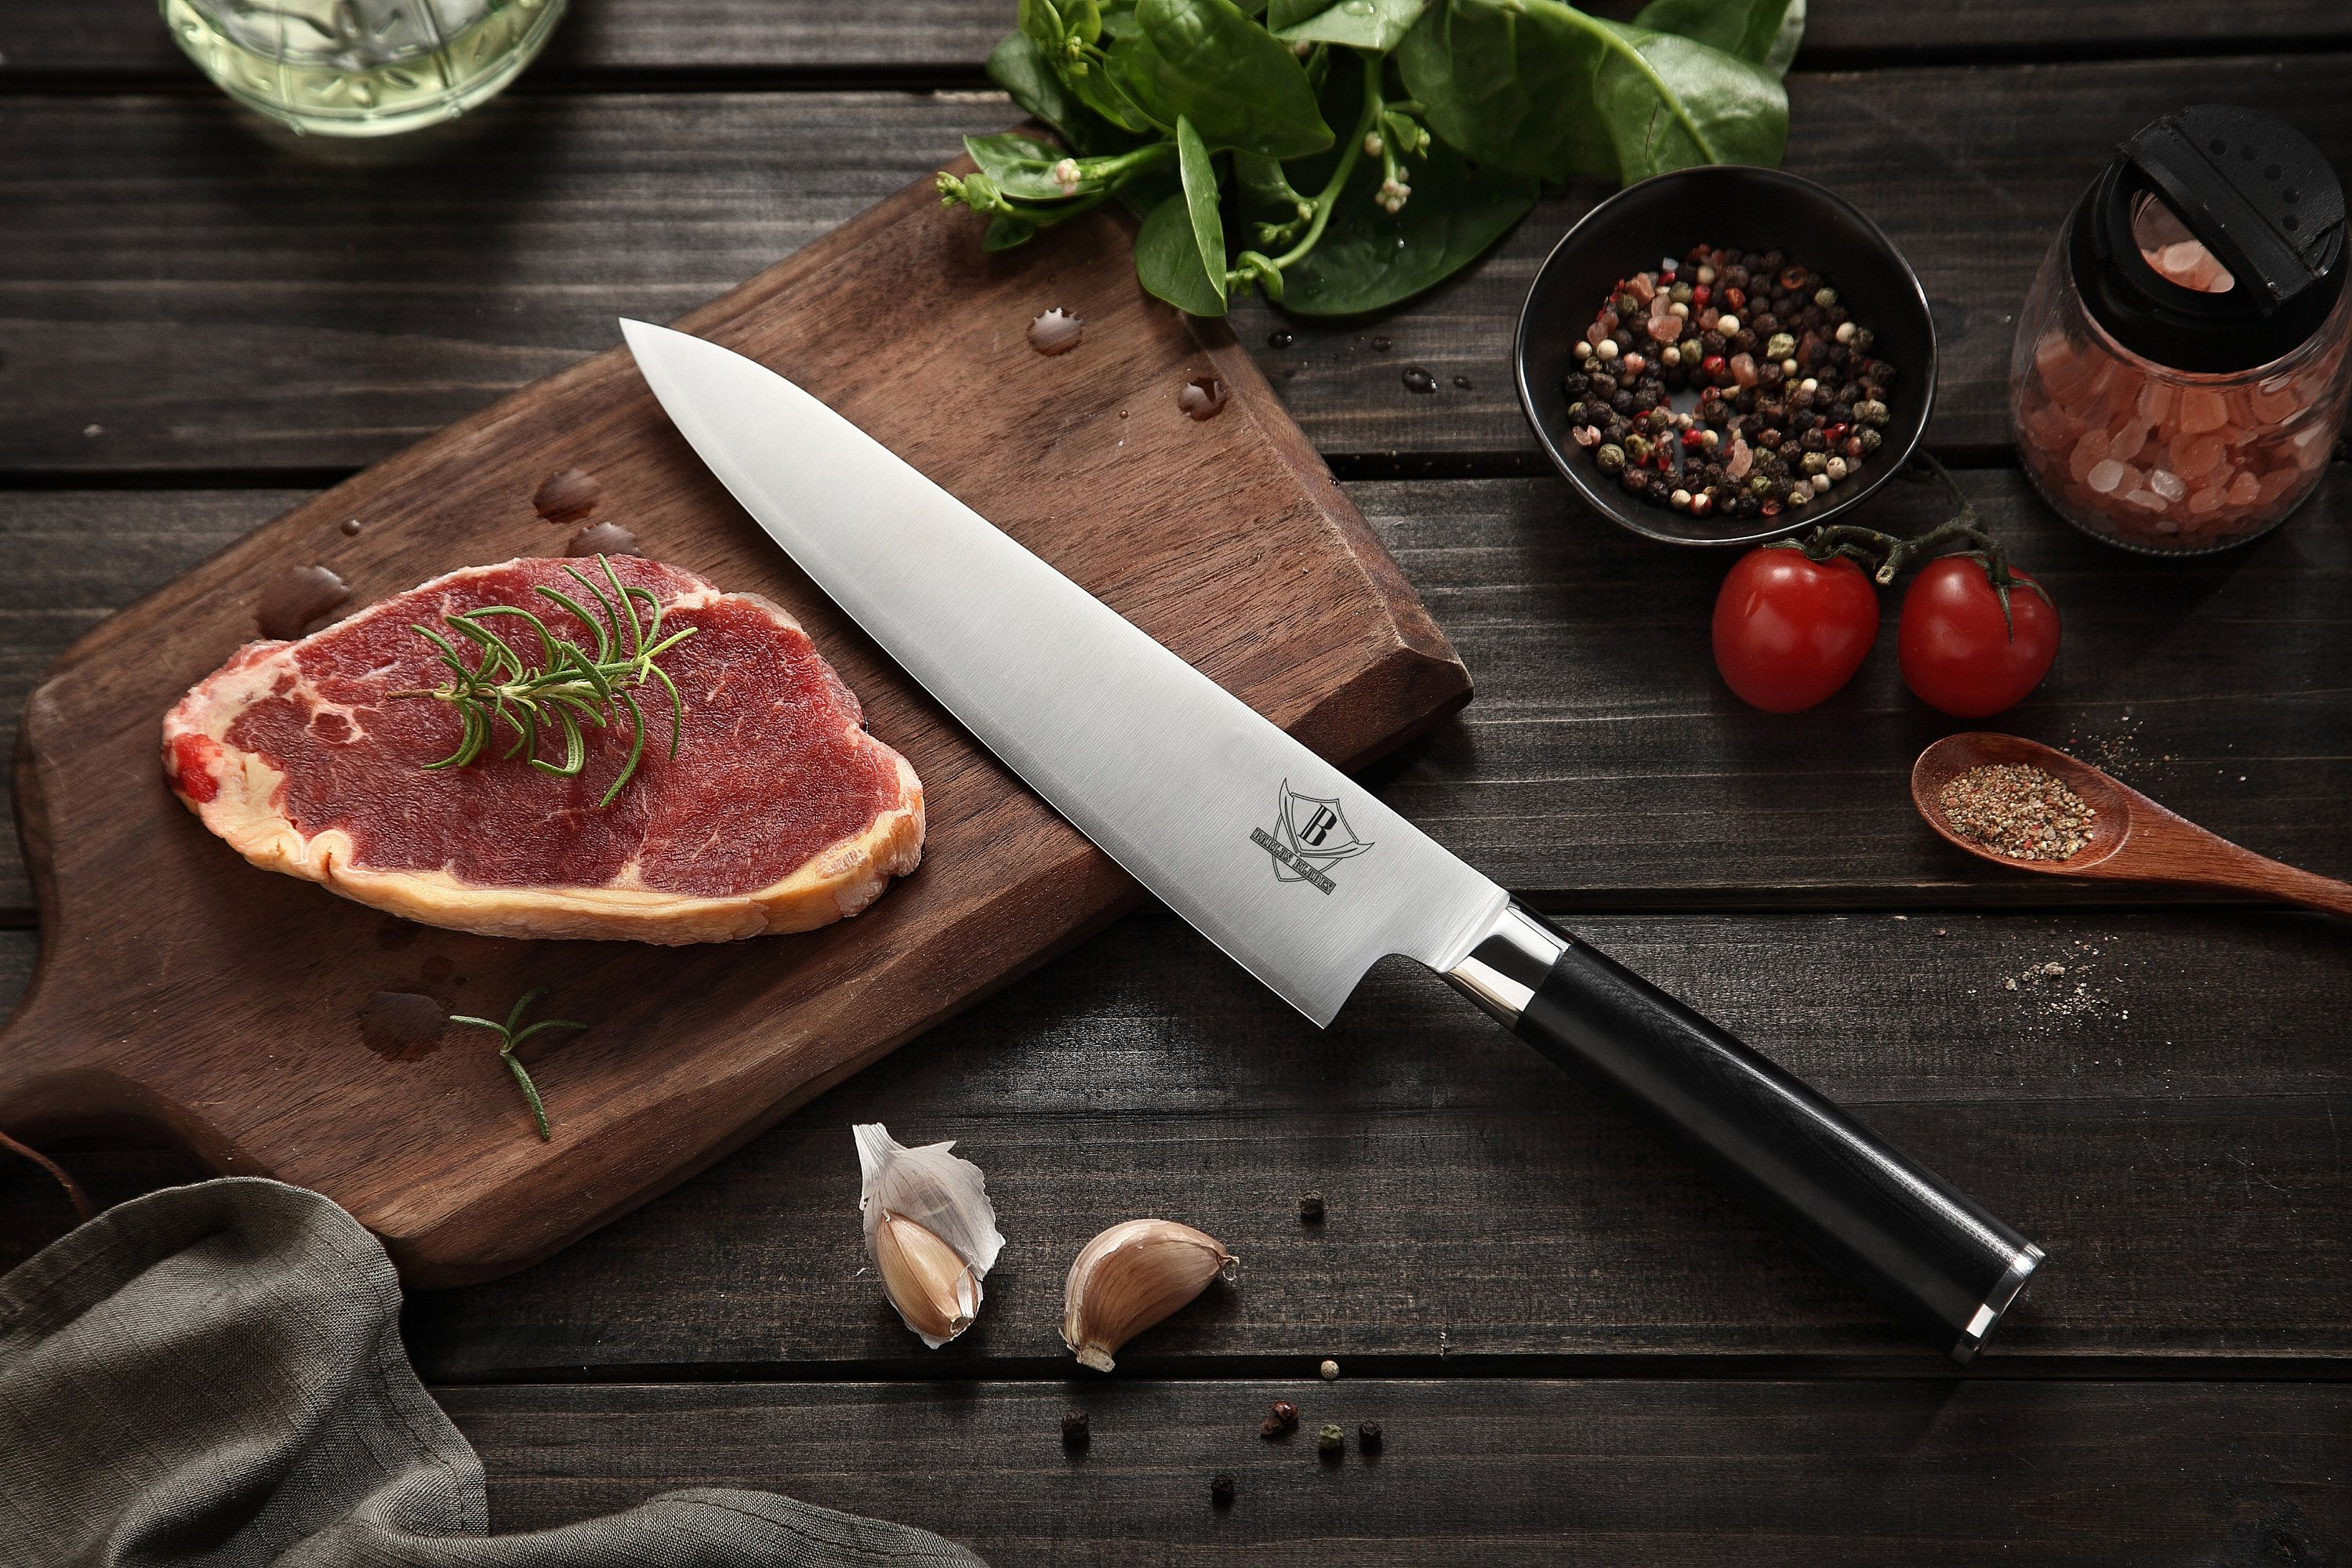 Chef 16 Professional 3 Layers 440c Clad Steel Kitchen Etsy Chef S Choice Chef Knife Chef